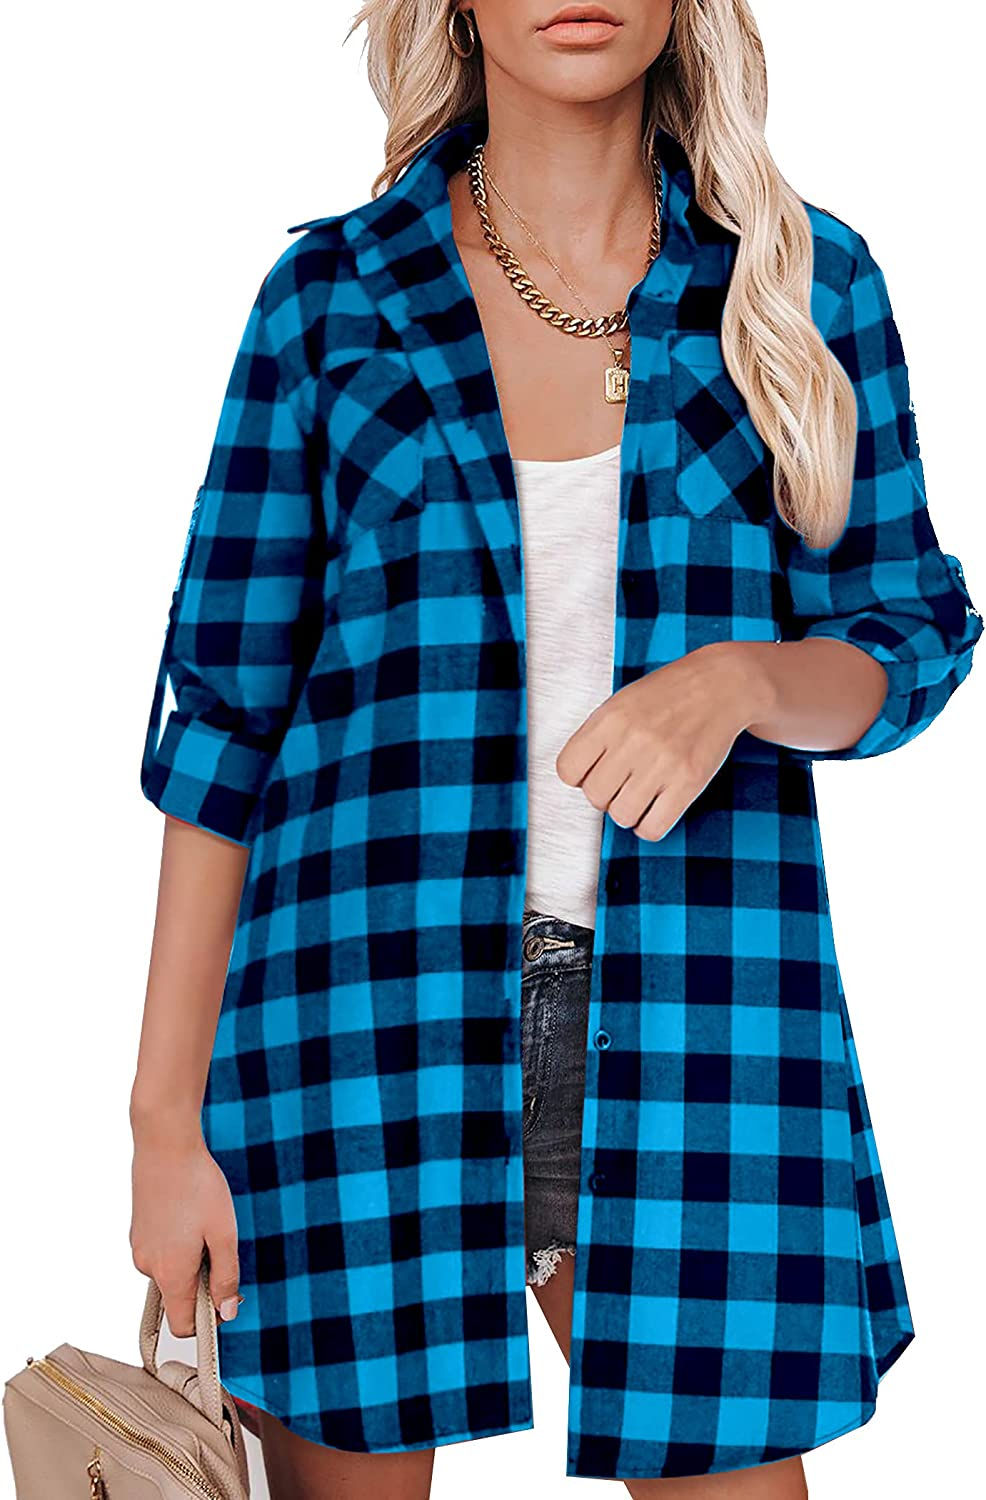 Hotouch Womens Flannel Plaid Shirts Roll Up Long Sleeve Pockets Casual Button Down Long Shirts